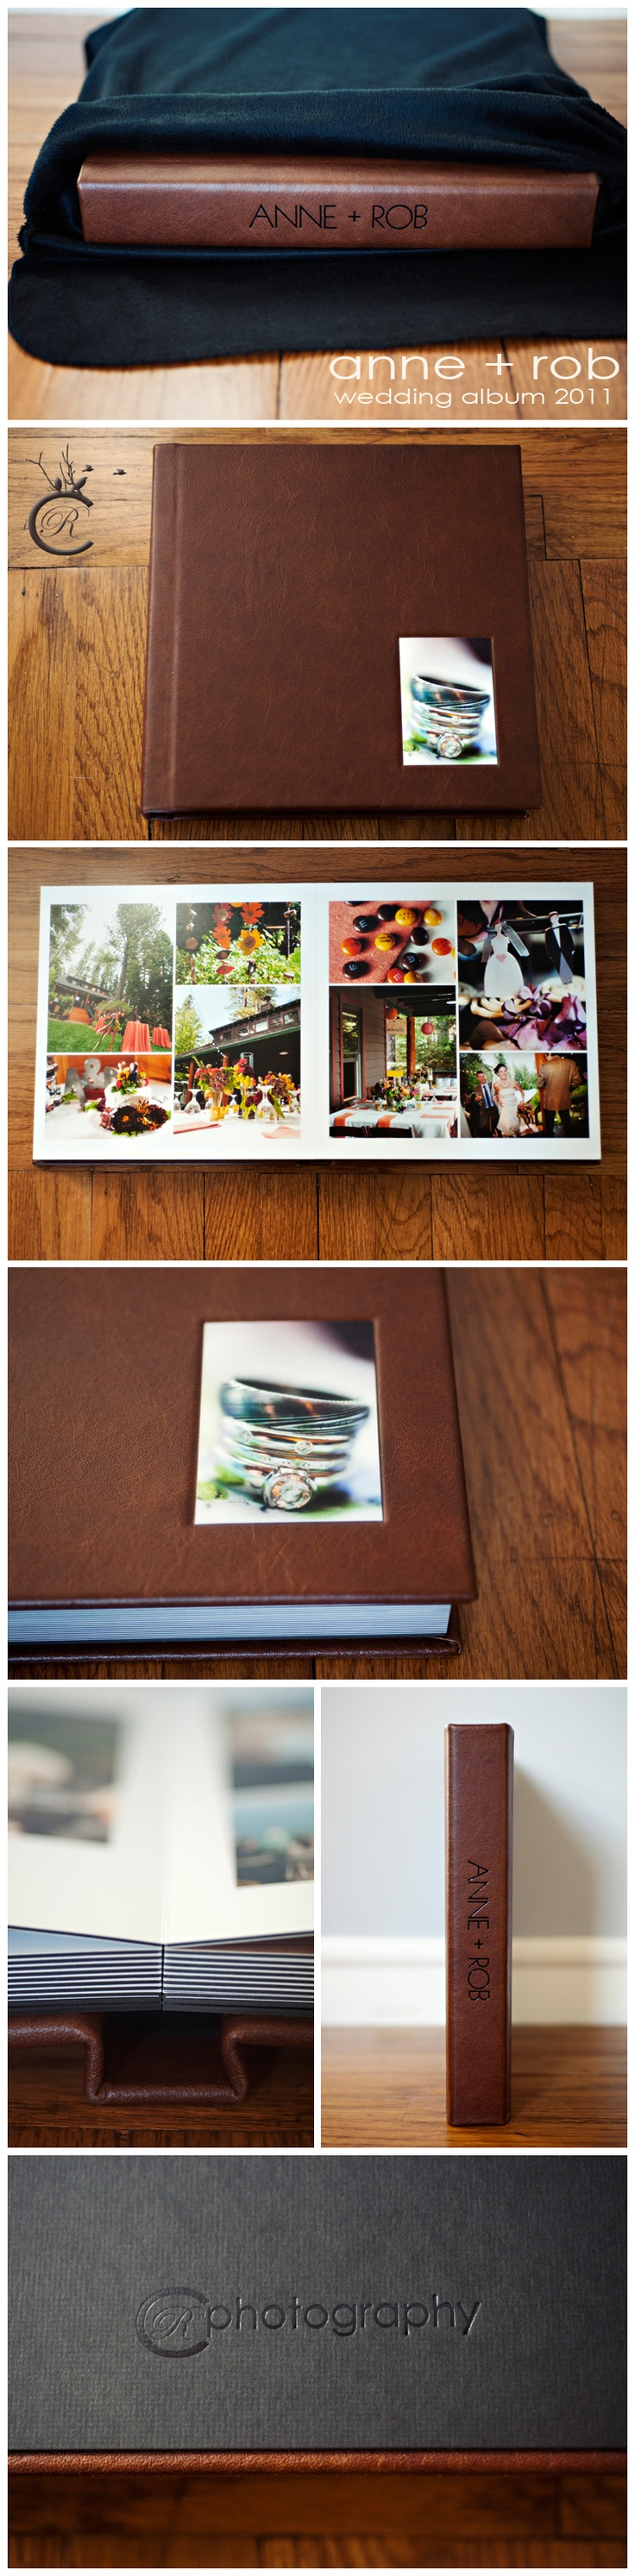 357 best photo album images on pinterest photo books page layout leather craftsmen 10x10 3500 flush mounted folded edition album the cover material distressed brown solutioingenieria Image collections